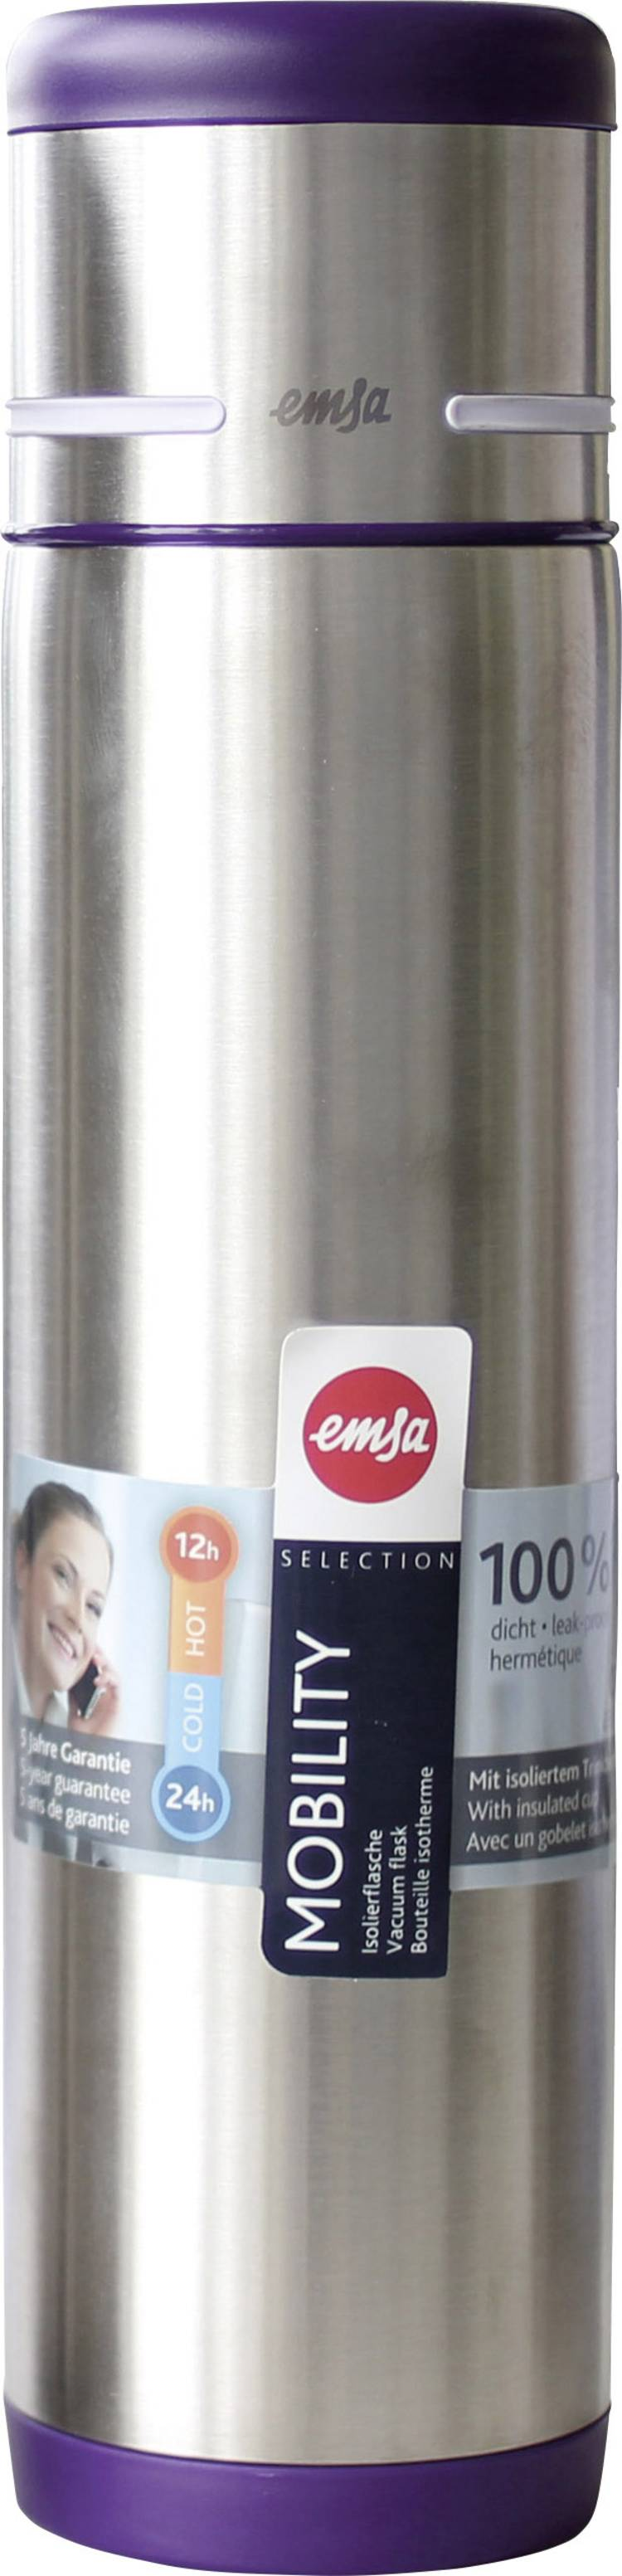 Image of Emsa-thermosfles Mobility, 0,7 liter, donkerpaars